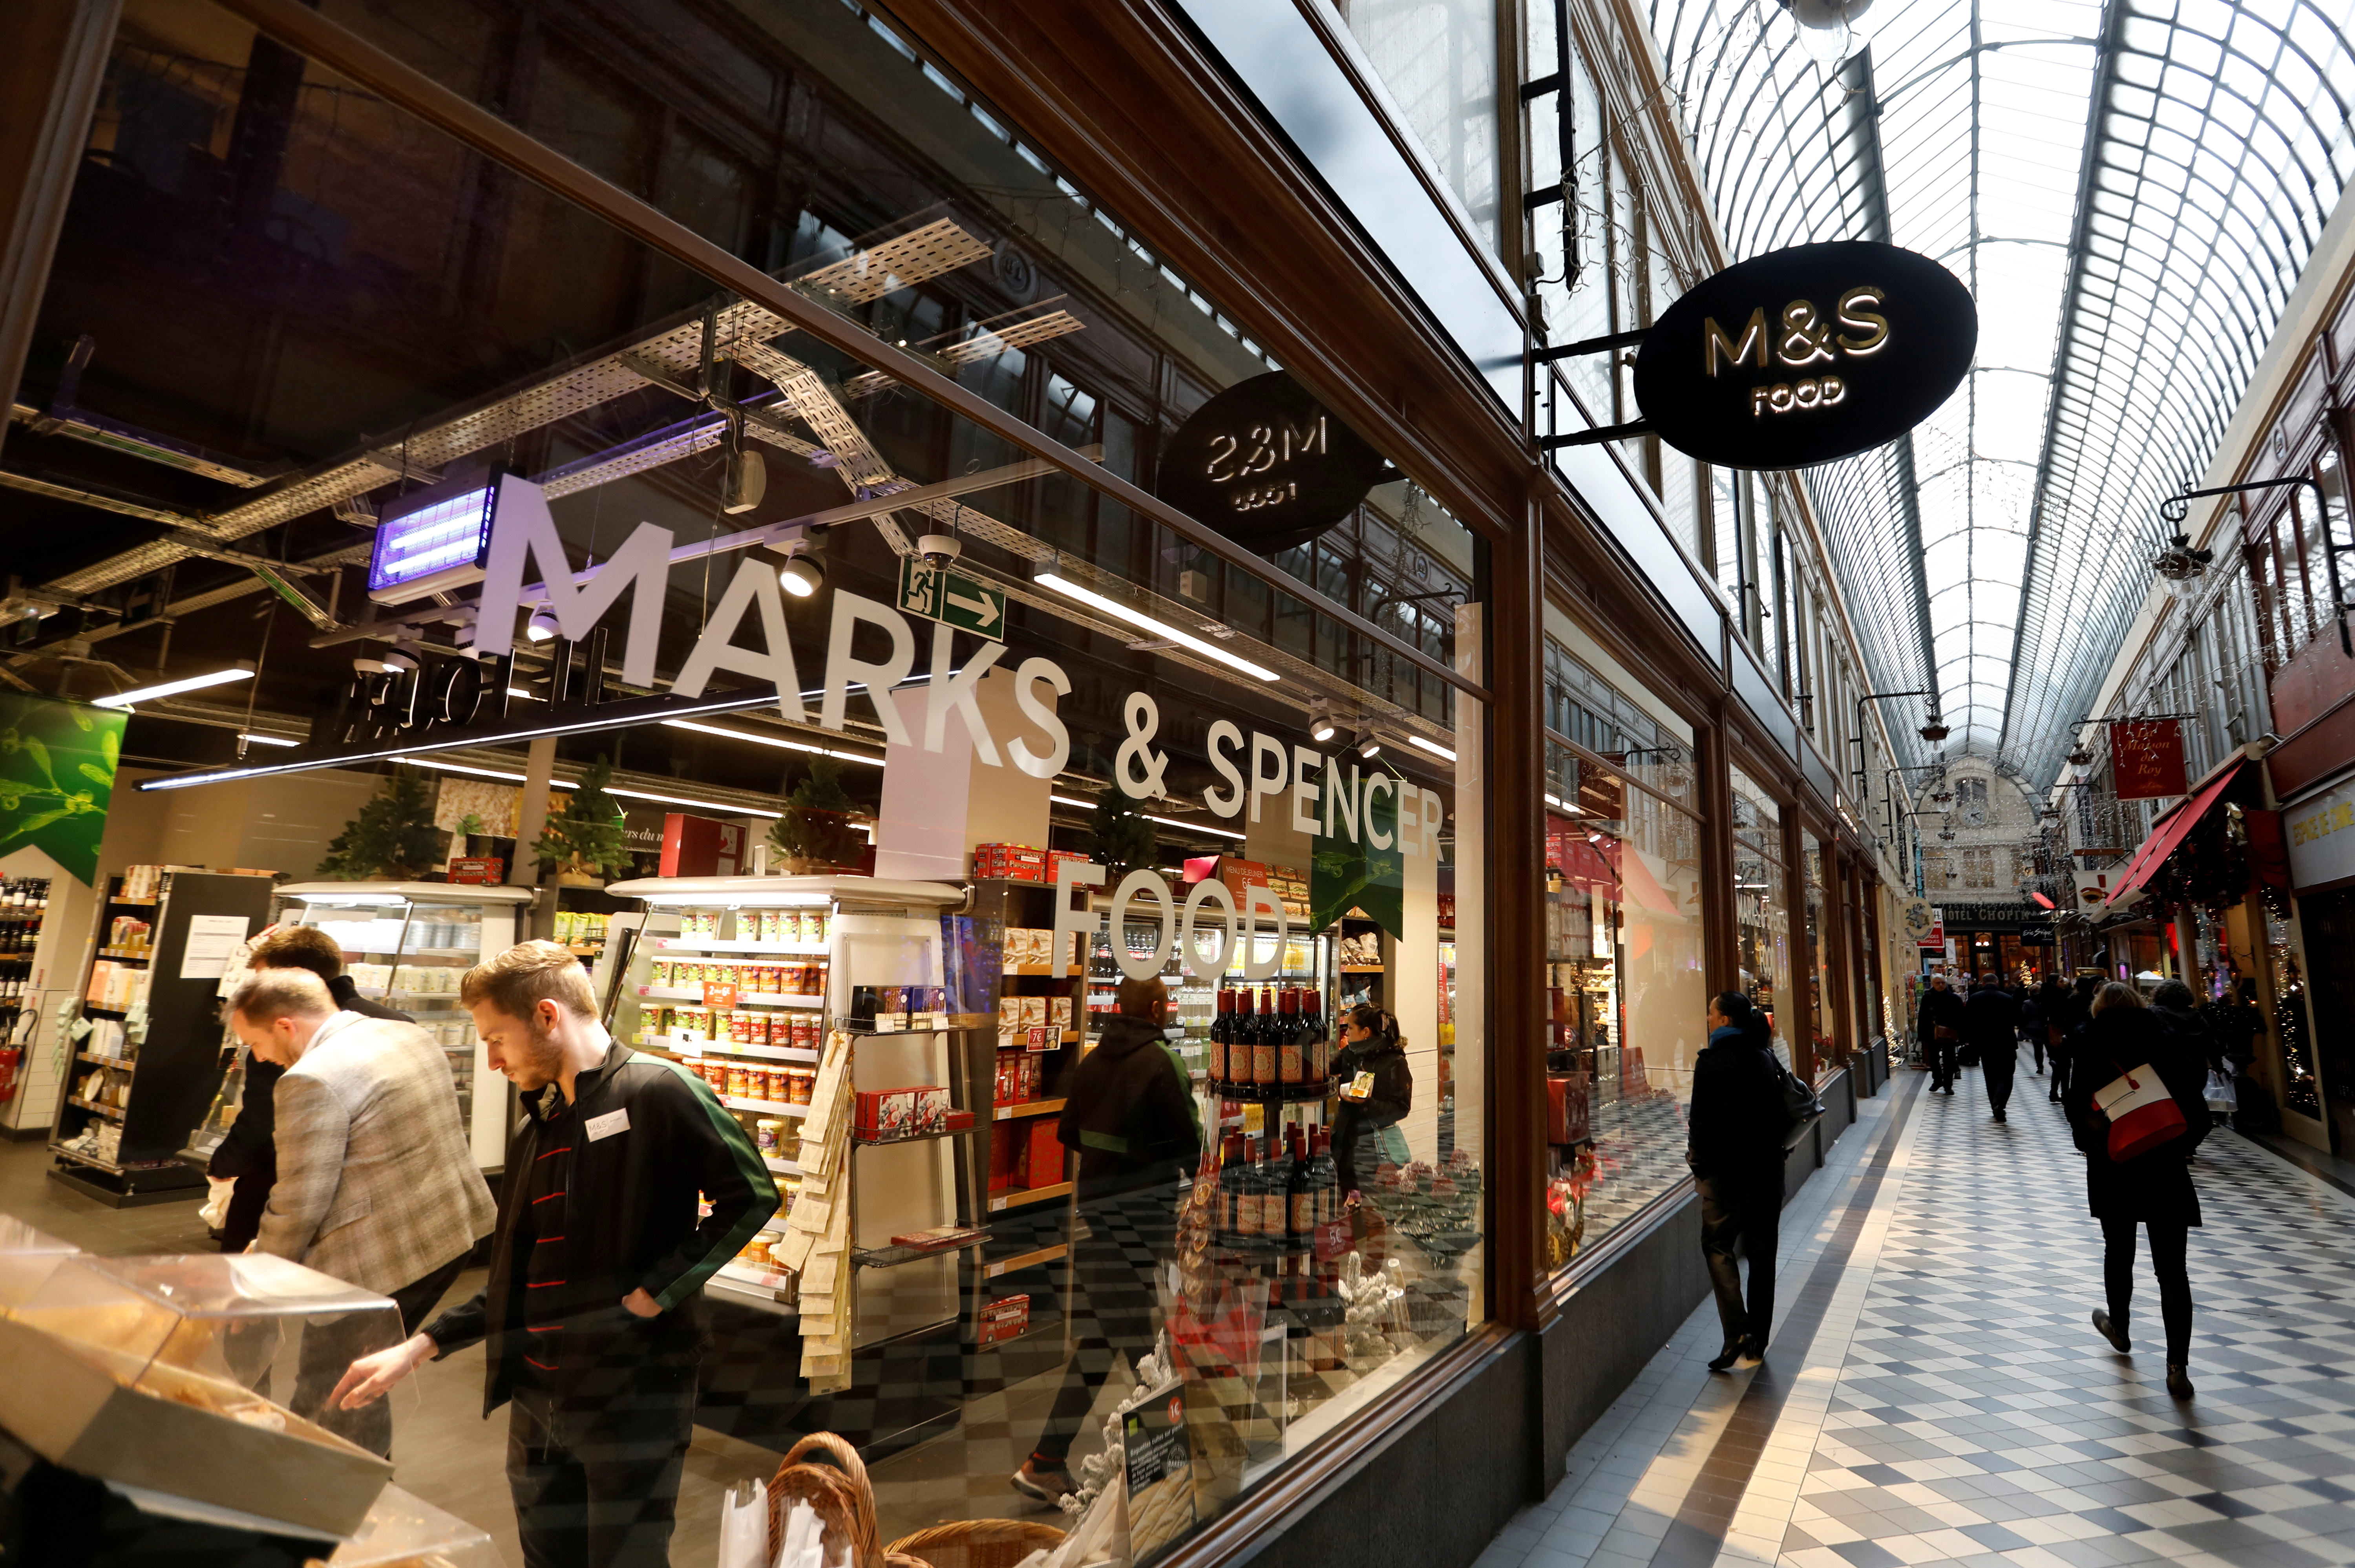 A Marks and Spencer store is seen in the covered Jouffroy passage in Paris, France, December 11, 2018. REUTERS/Charles Platiau